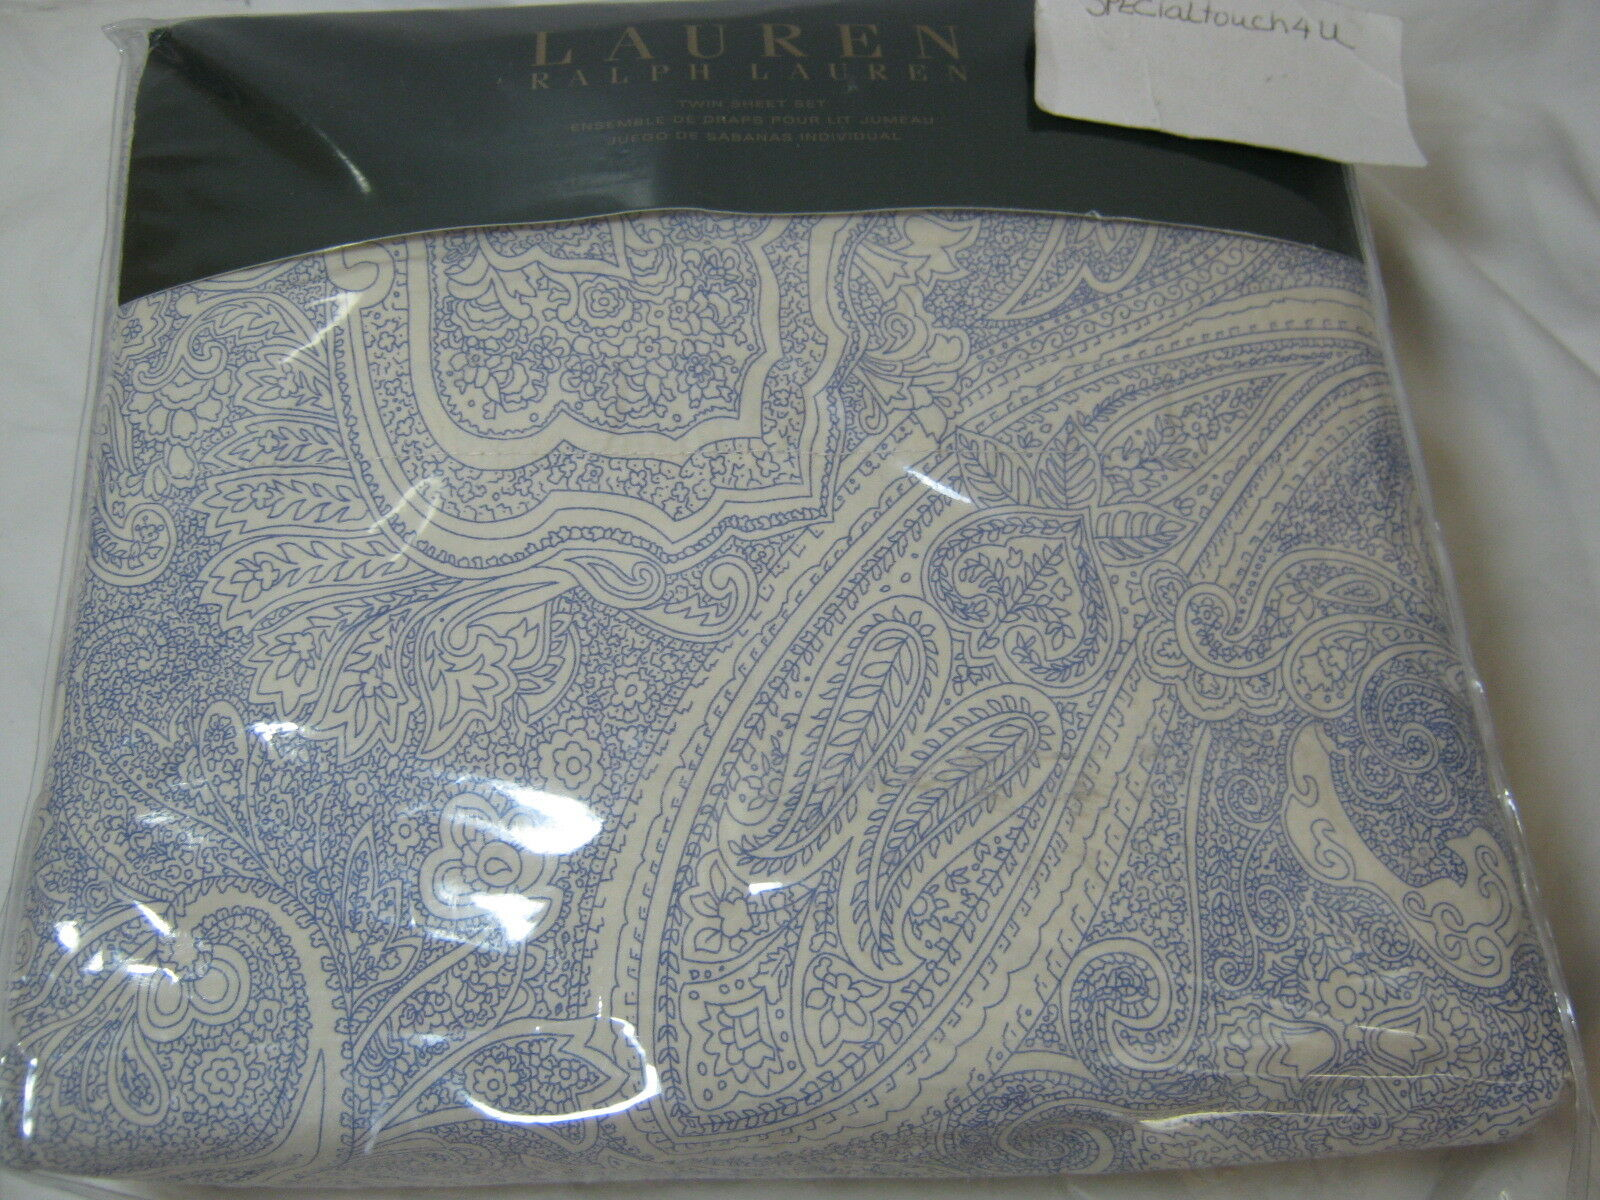 New RALPH LAUREN TWIN SHEET SET Blau Cream PAISLEY Leaf Floral NIP